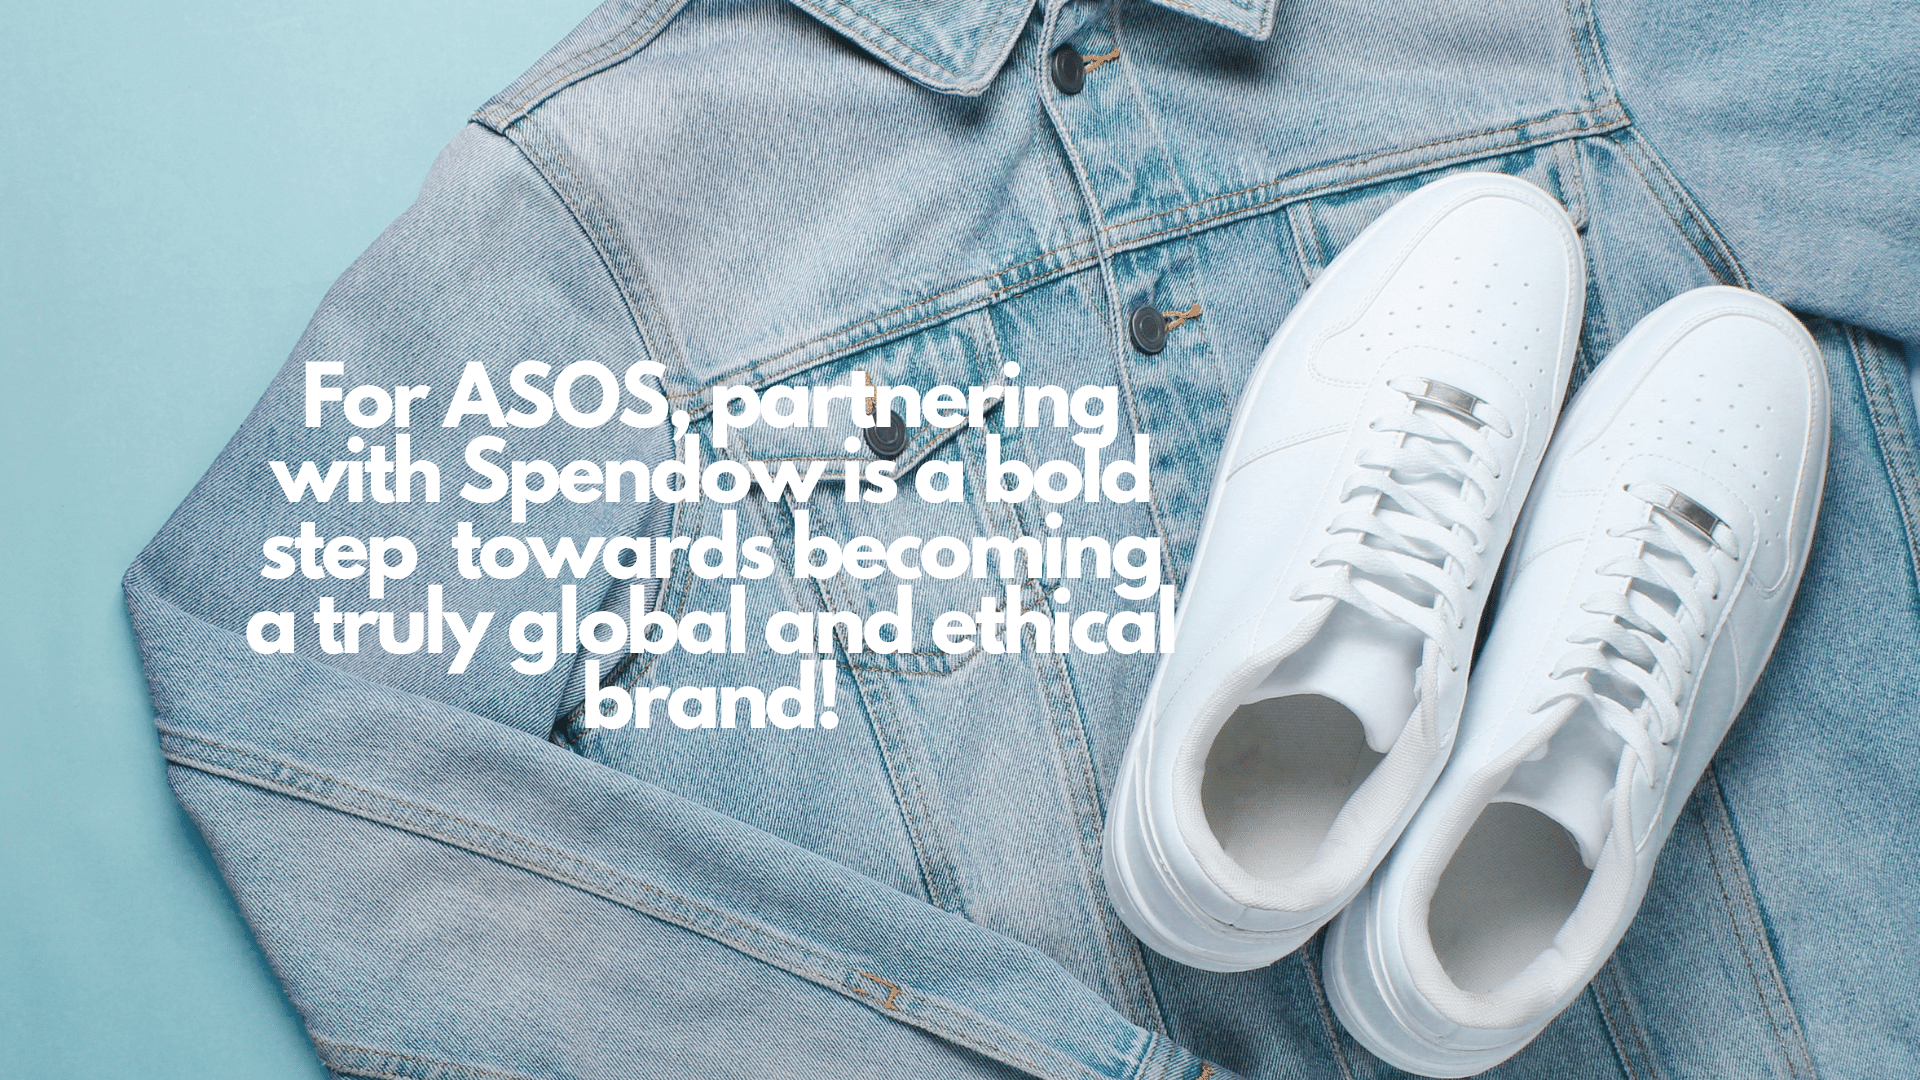 Can ASOS become a sustainable and ethical brand?